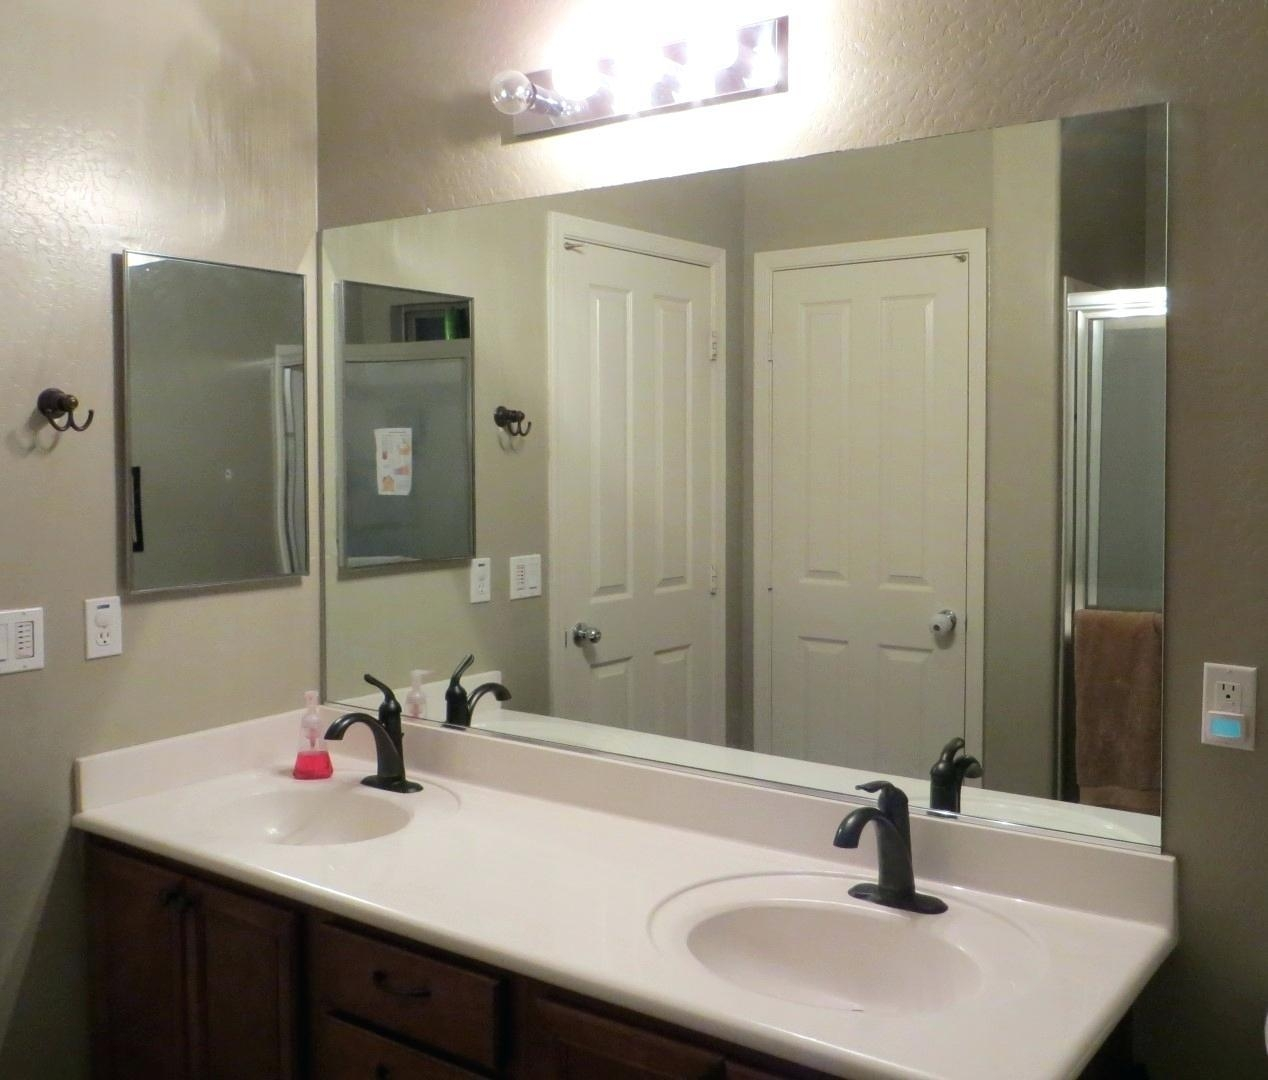 Wall Mirrors For Bathroom – Hondaherreros In Wall Mirrors For Bathrooms (Image 20 of 20)